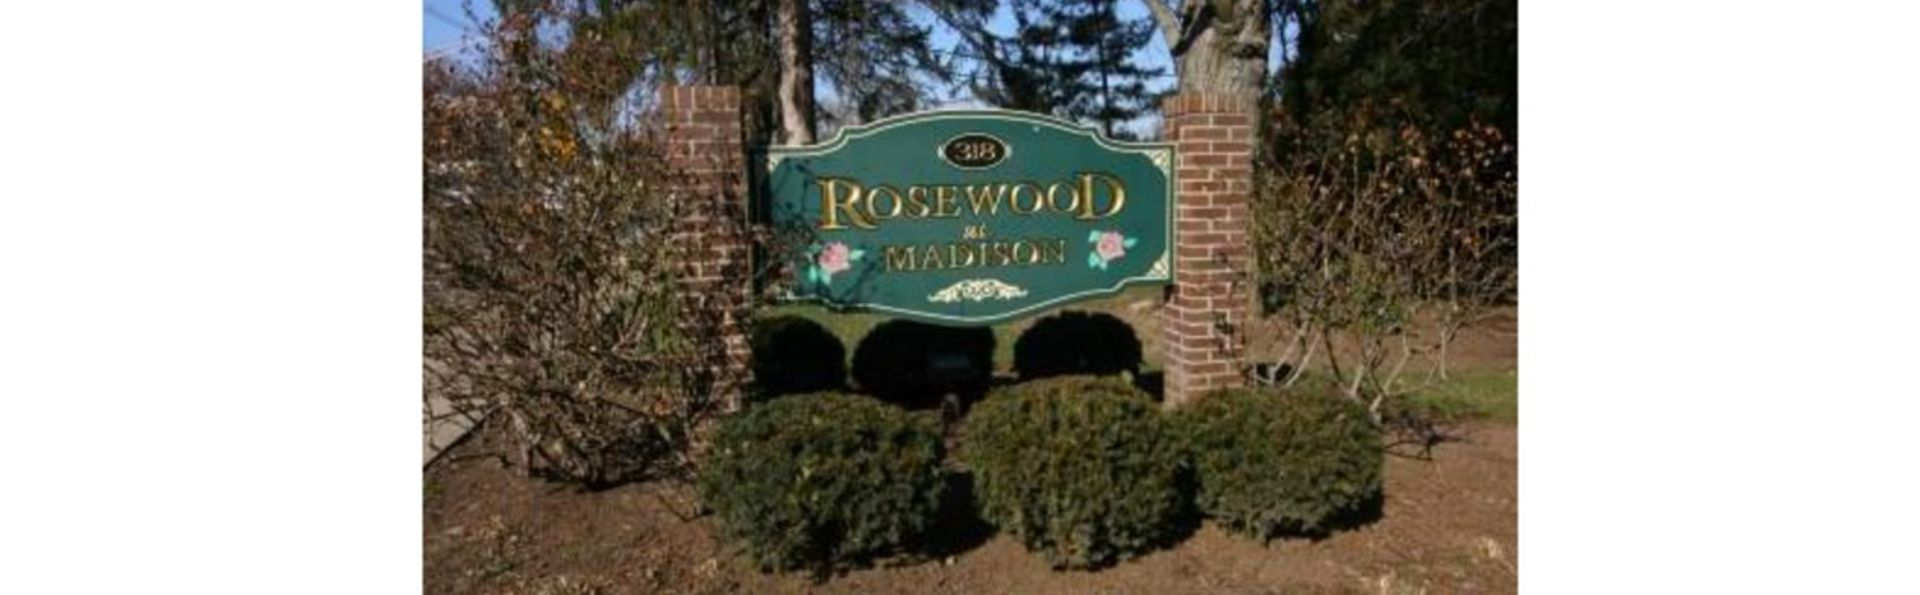 Just Listed! Madison NJ townhome, 318 Main Street, $399,000